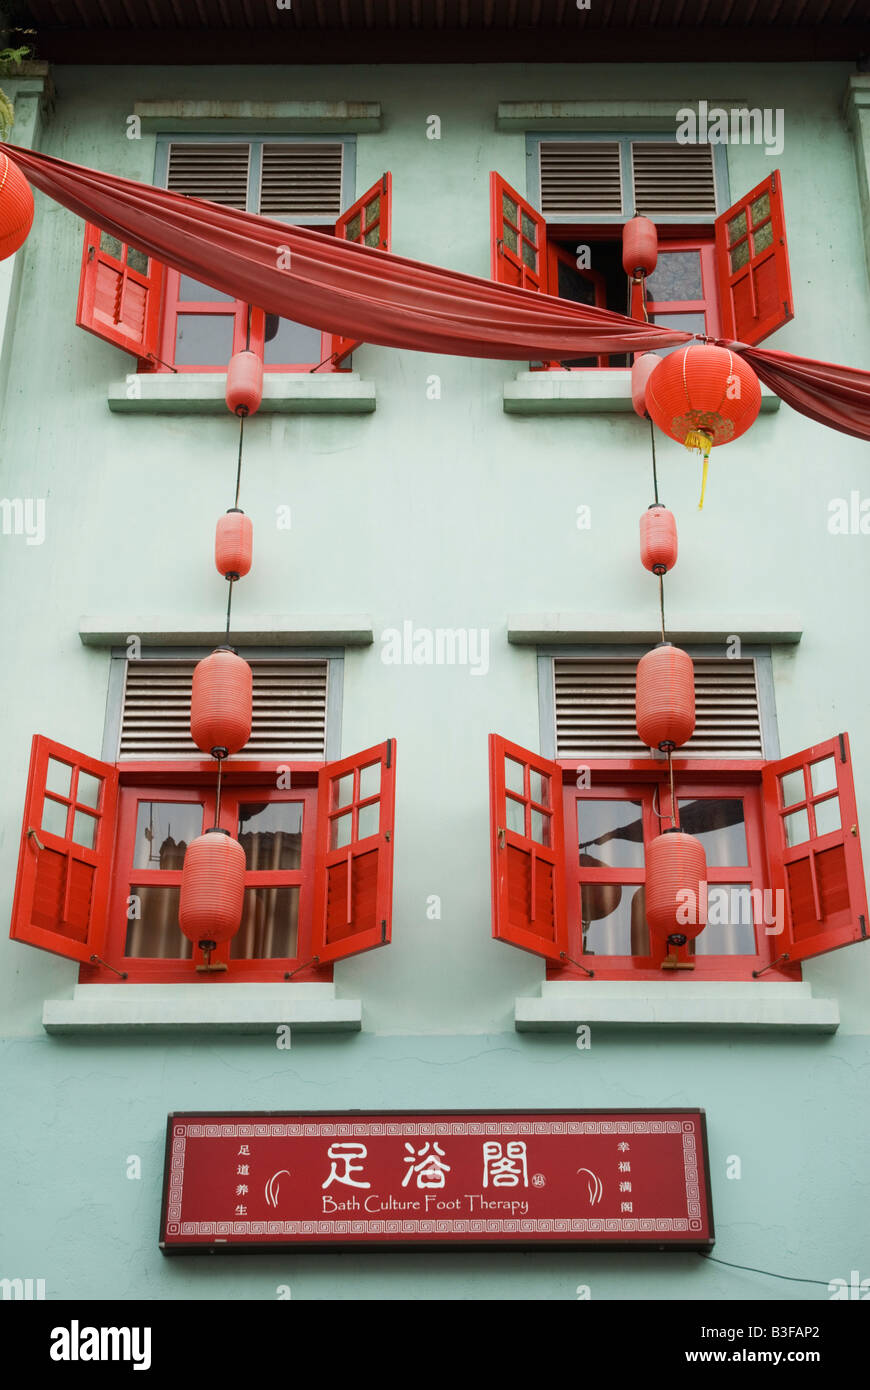 Red and green shophouse facade Chinatown, Singapore Stock Photo